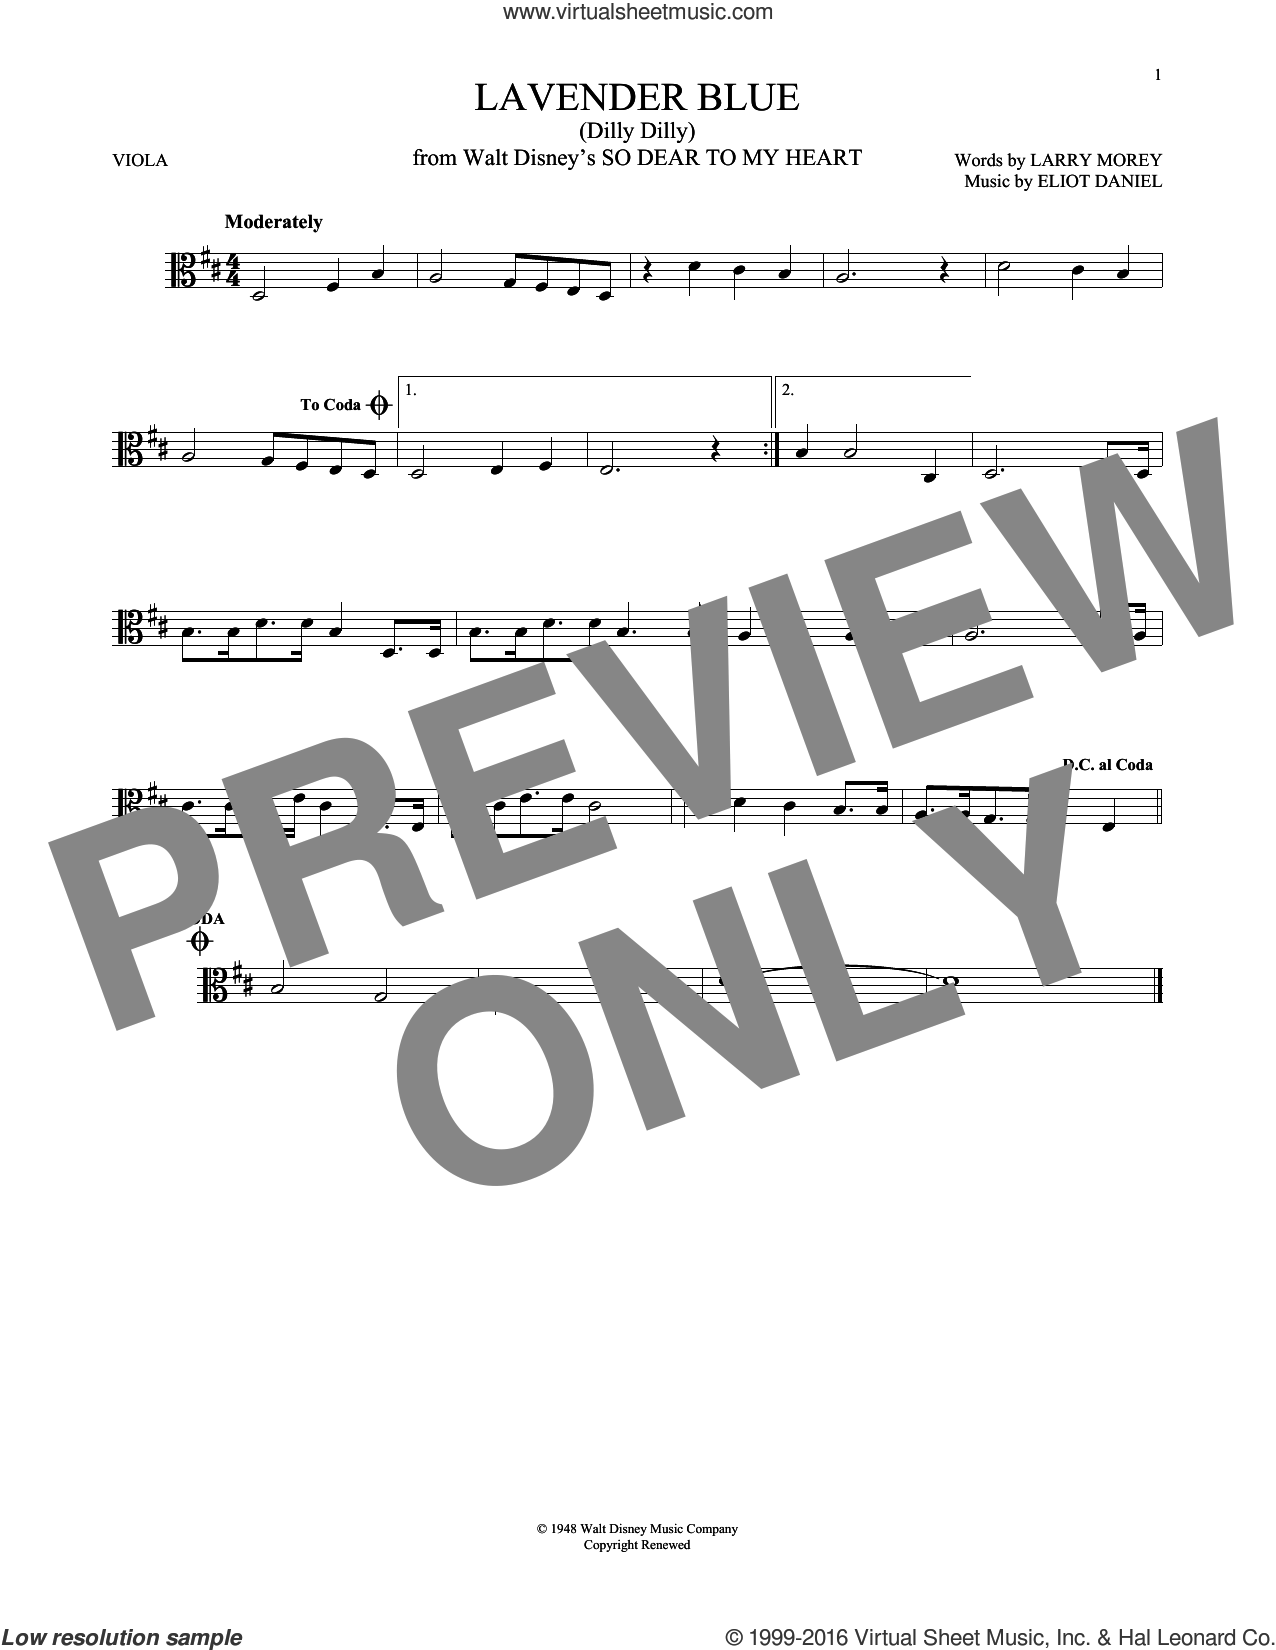 Lavender Blue (Dilly Dilly) sheet music for viola solo by Sammy Turner, Eliot Daniel and Larry Morey, intermediate skill level